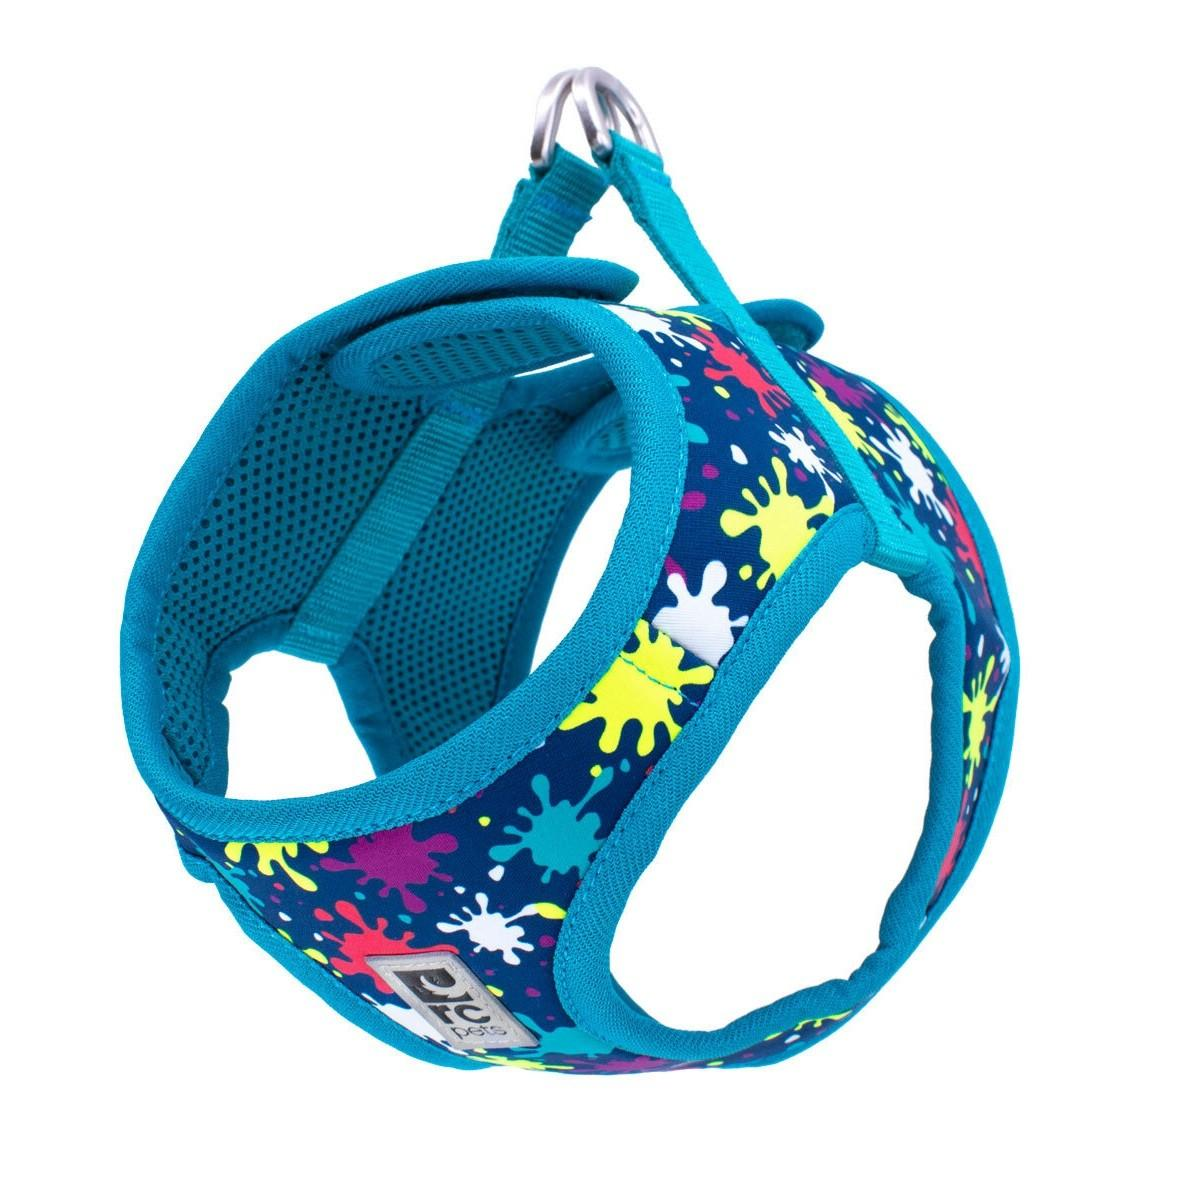 RC Pet Products Step in Cirque Dog Harness, Splatter, X-Small